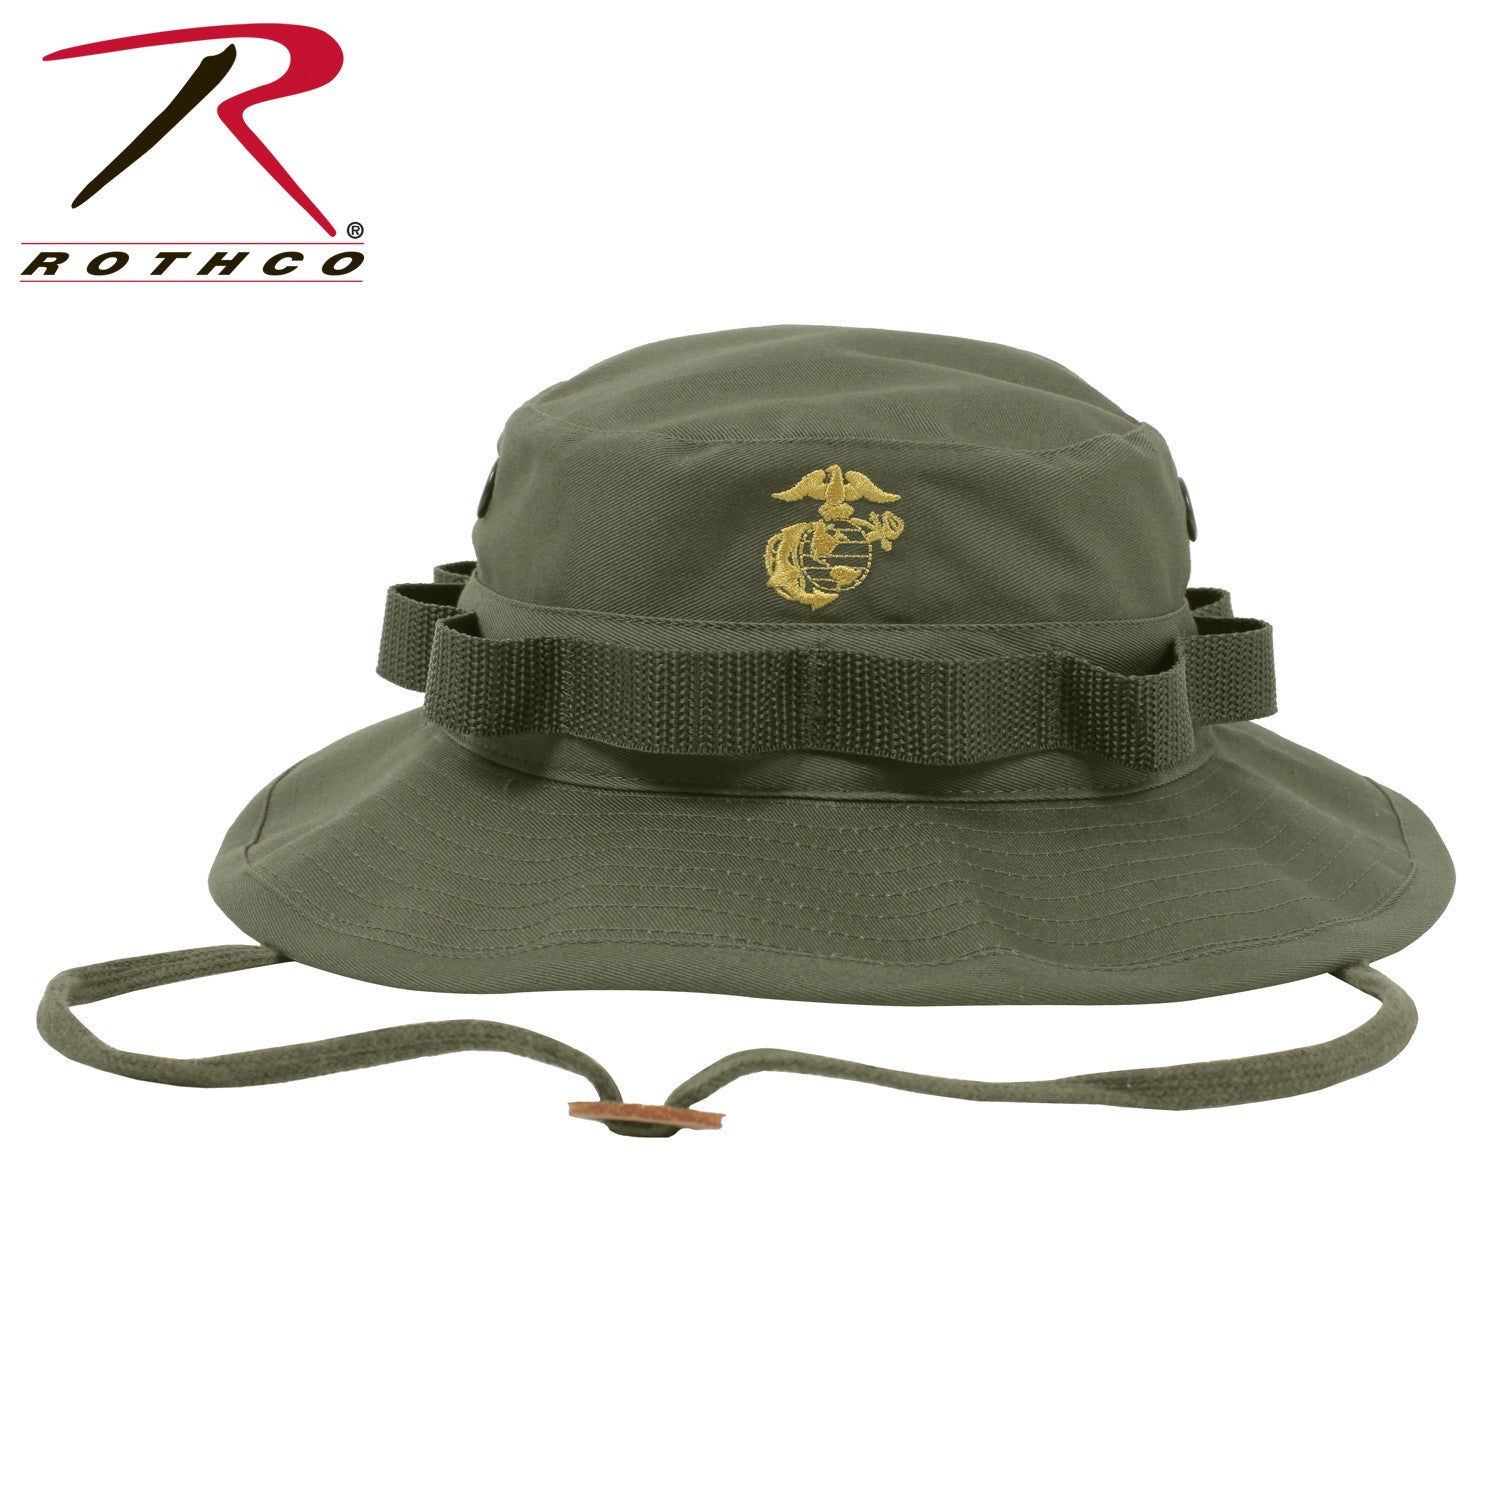 Rothco Globe & Anchor Boonie Hat